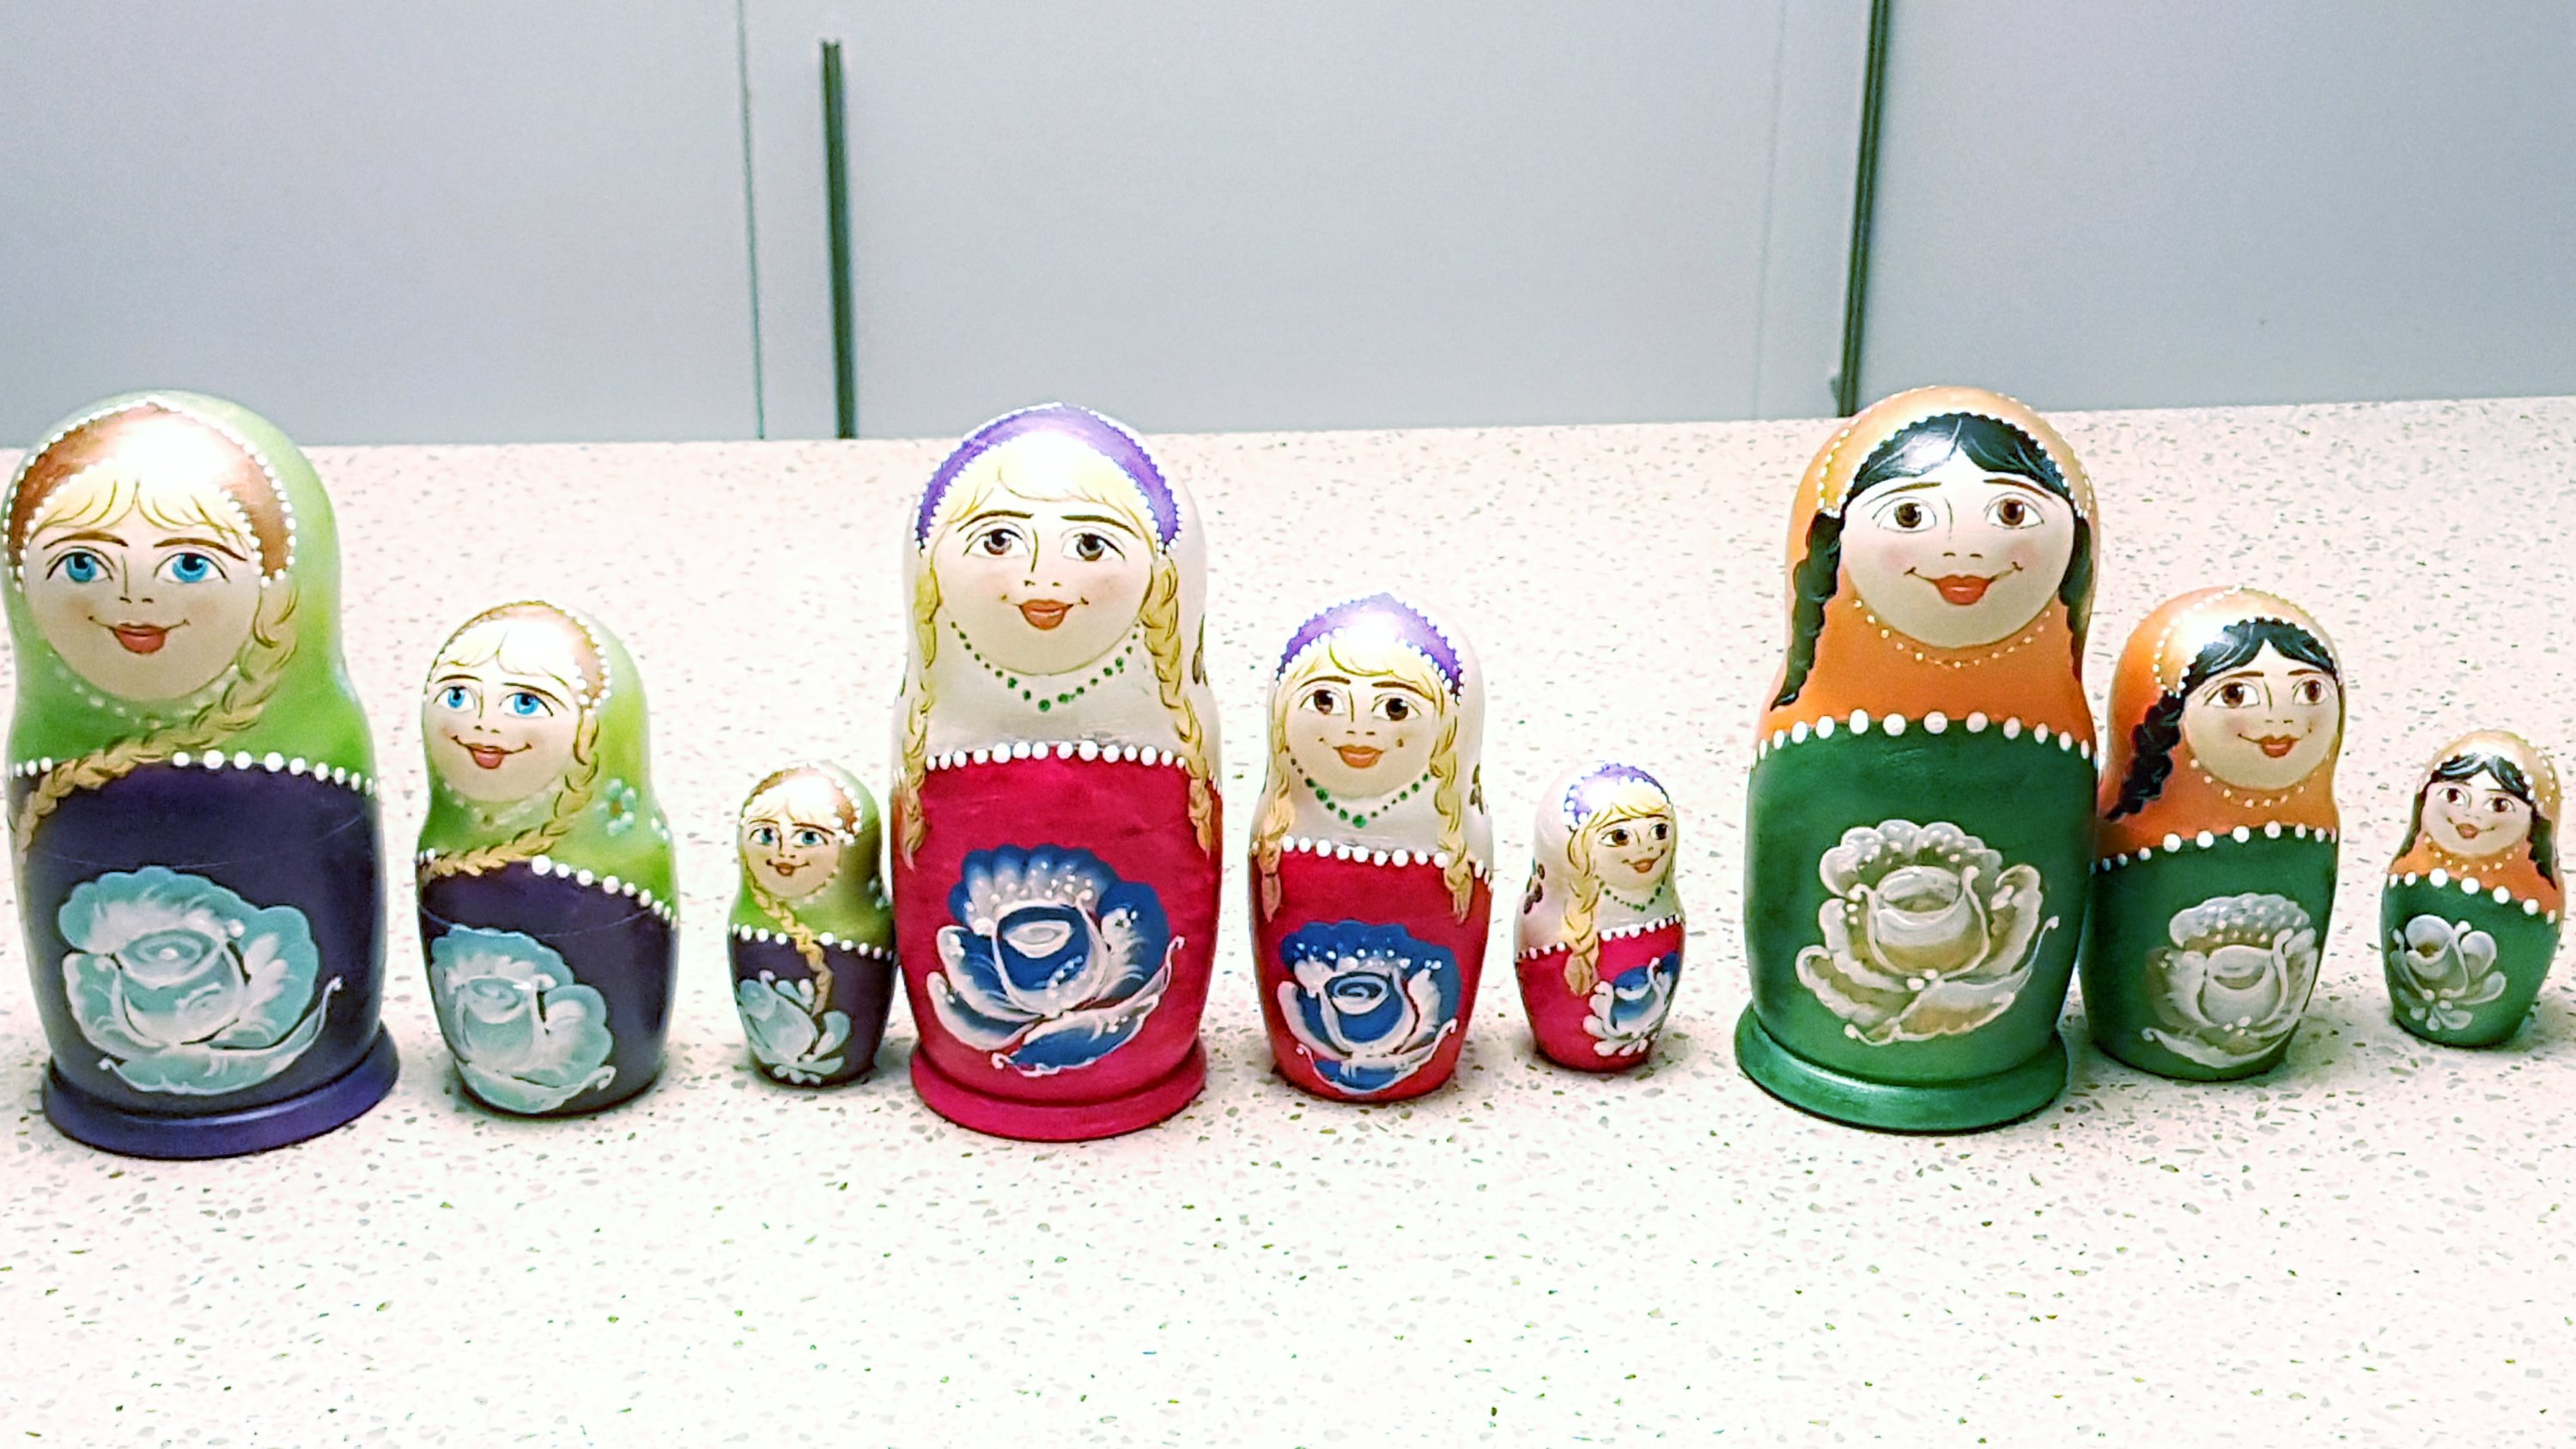 Painting your own Russian Dolls in St Petersburg, Russia